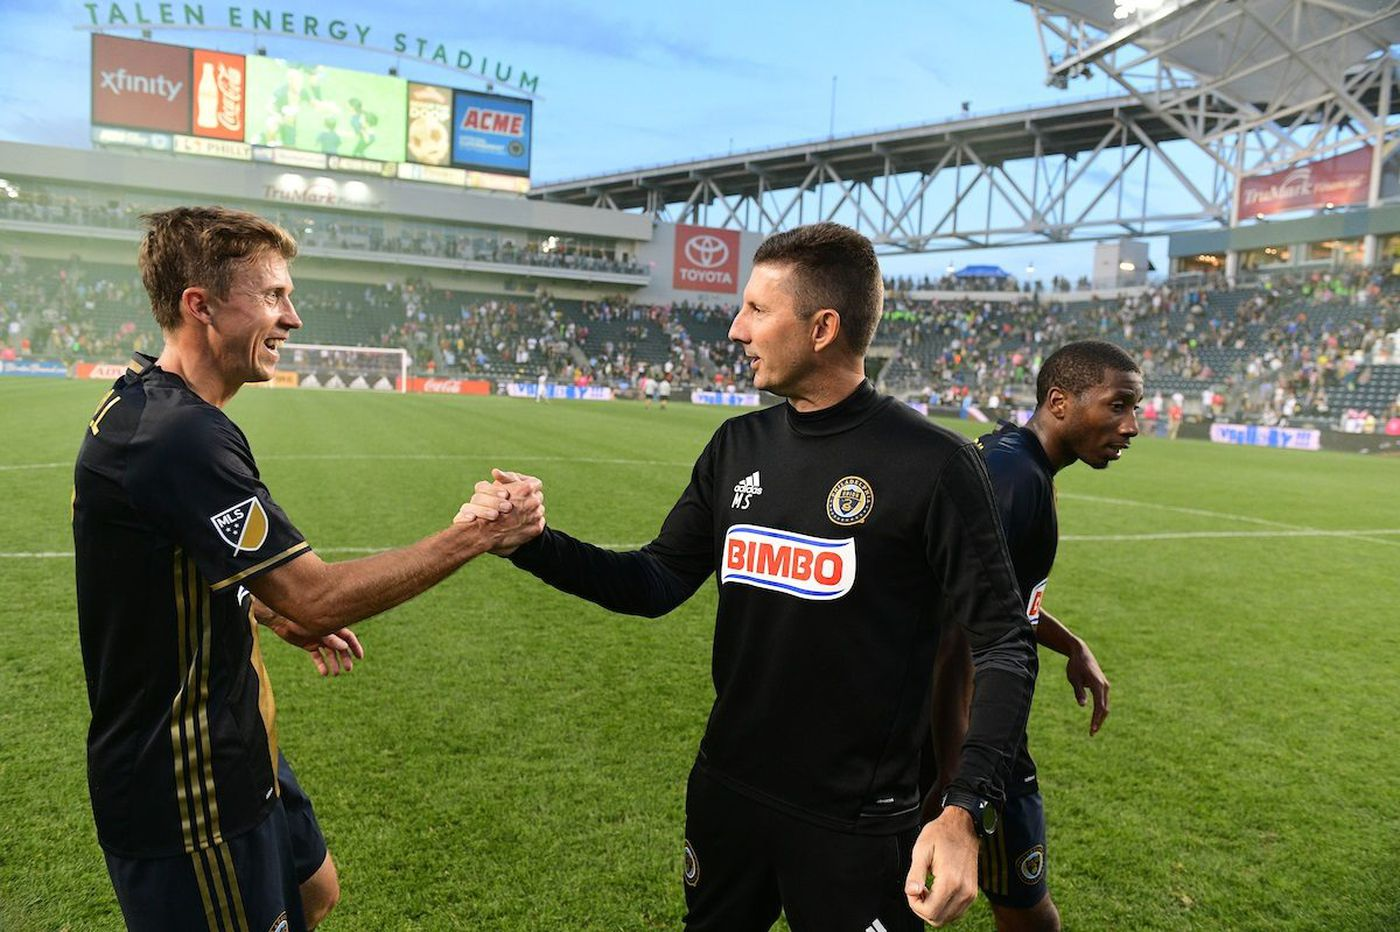 Union lose top assistant coach Mike Sorber to MLS expansion team Los Angeles FC